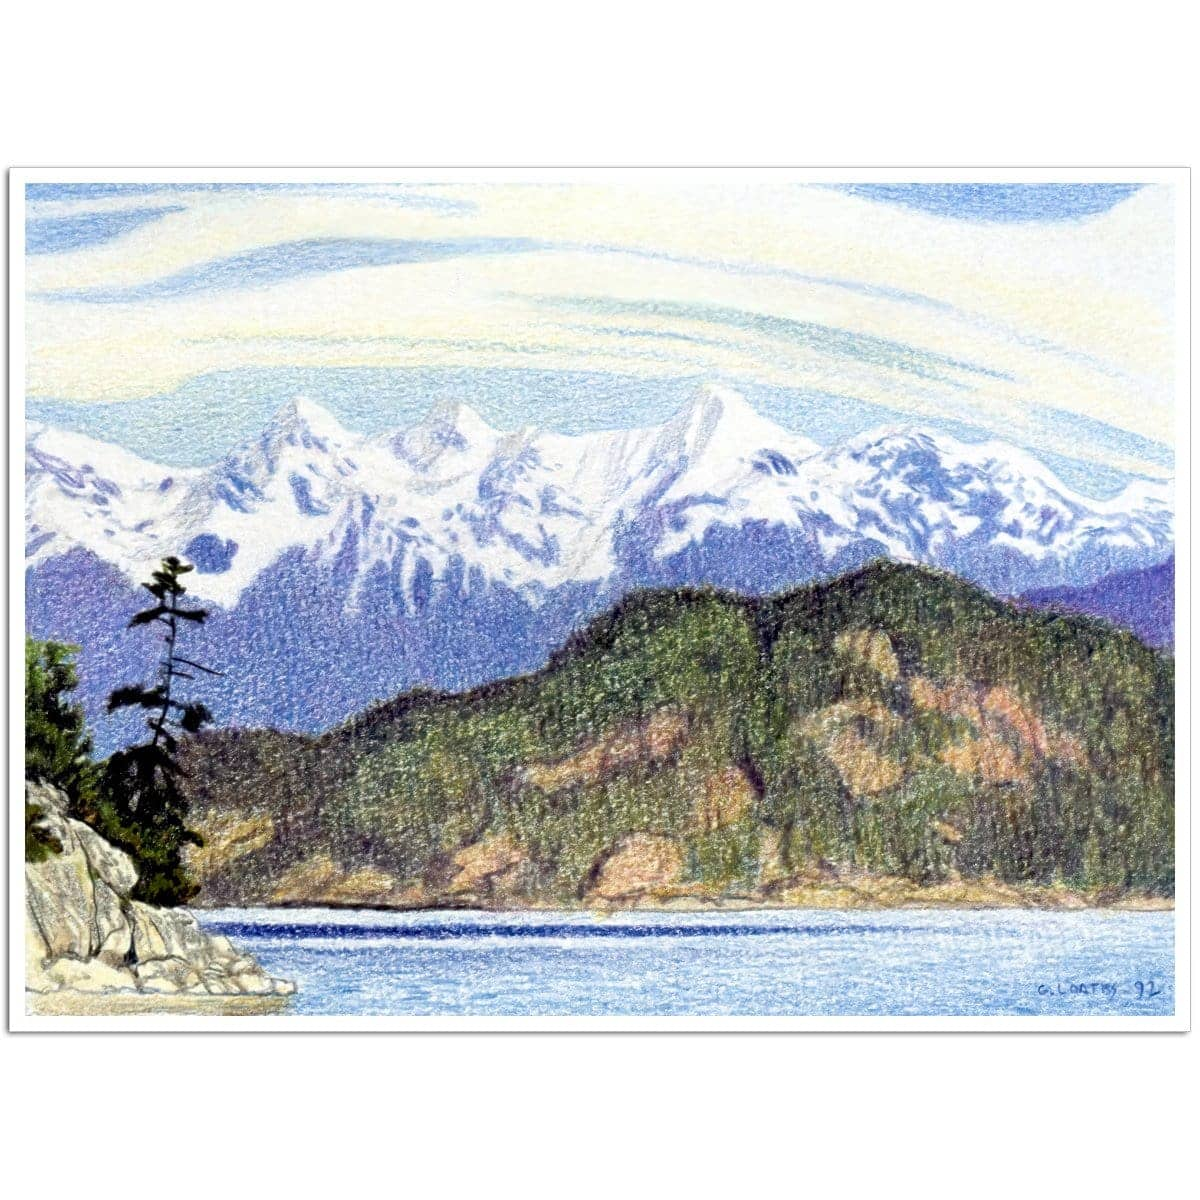 Snow Capped Mountains in British Columbia - Art Print by Glen Loates from the Glen Loates Store